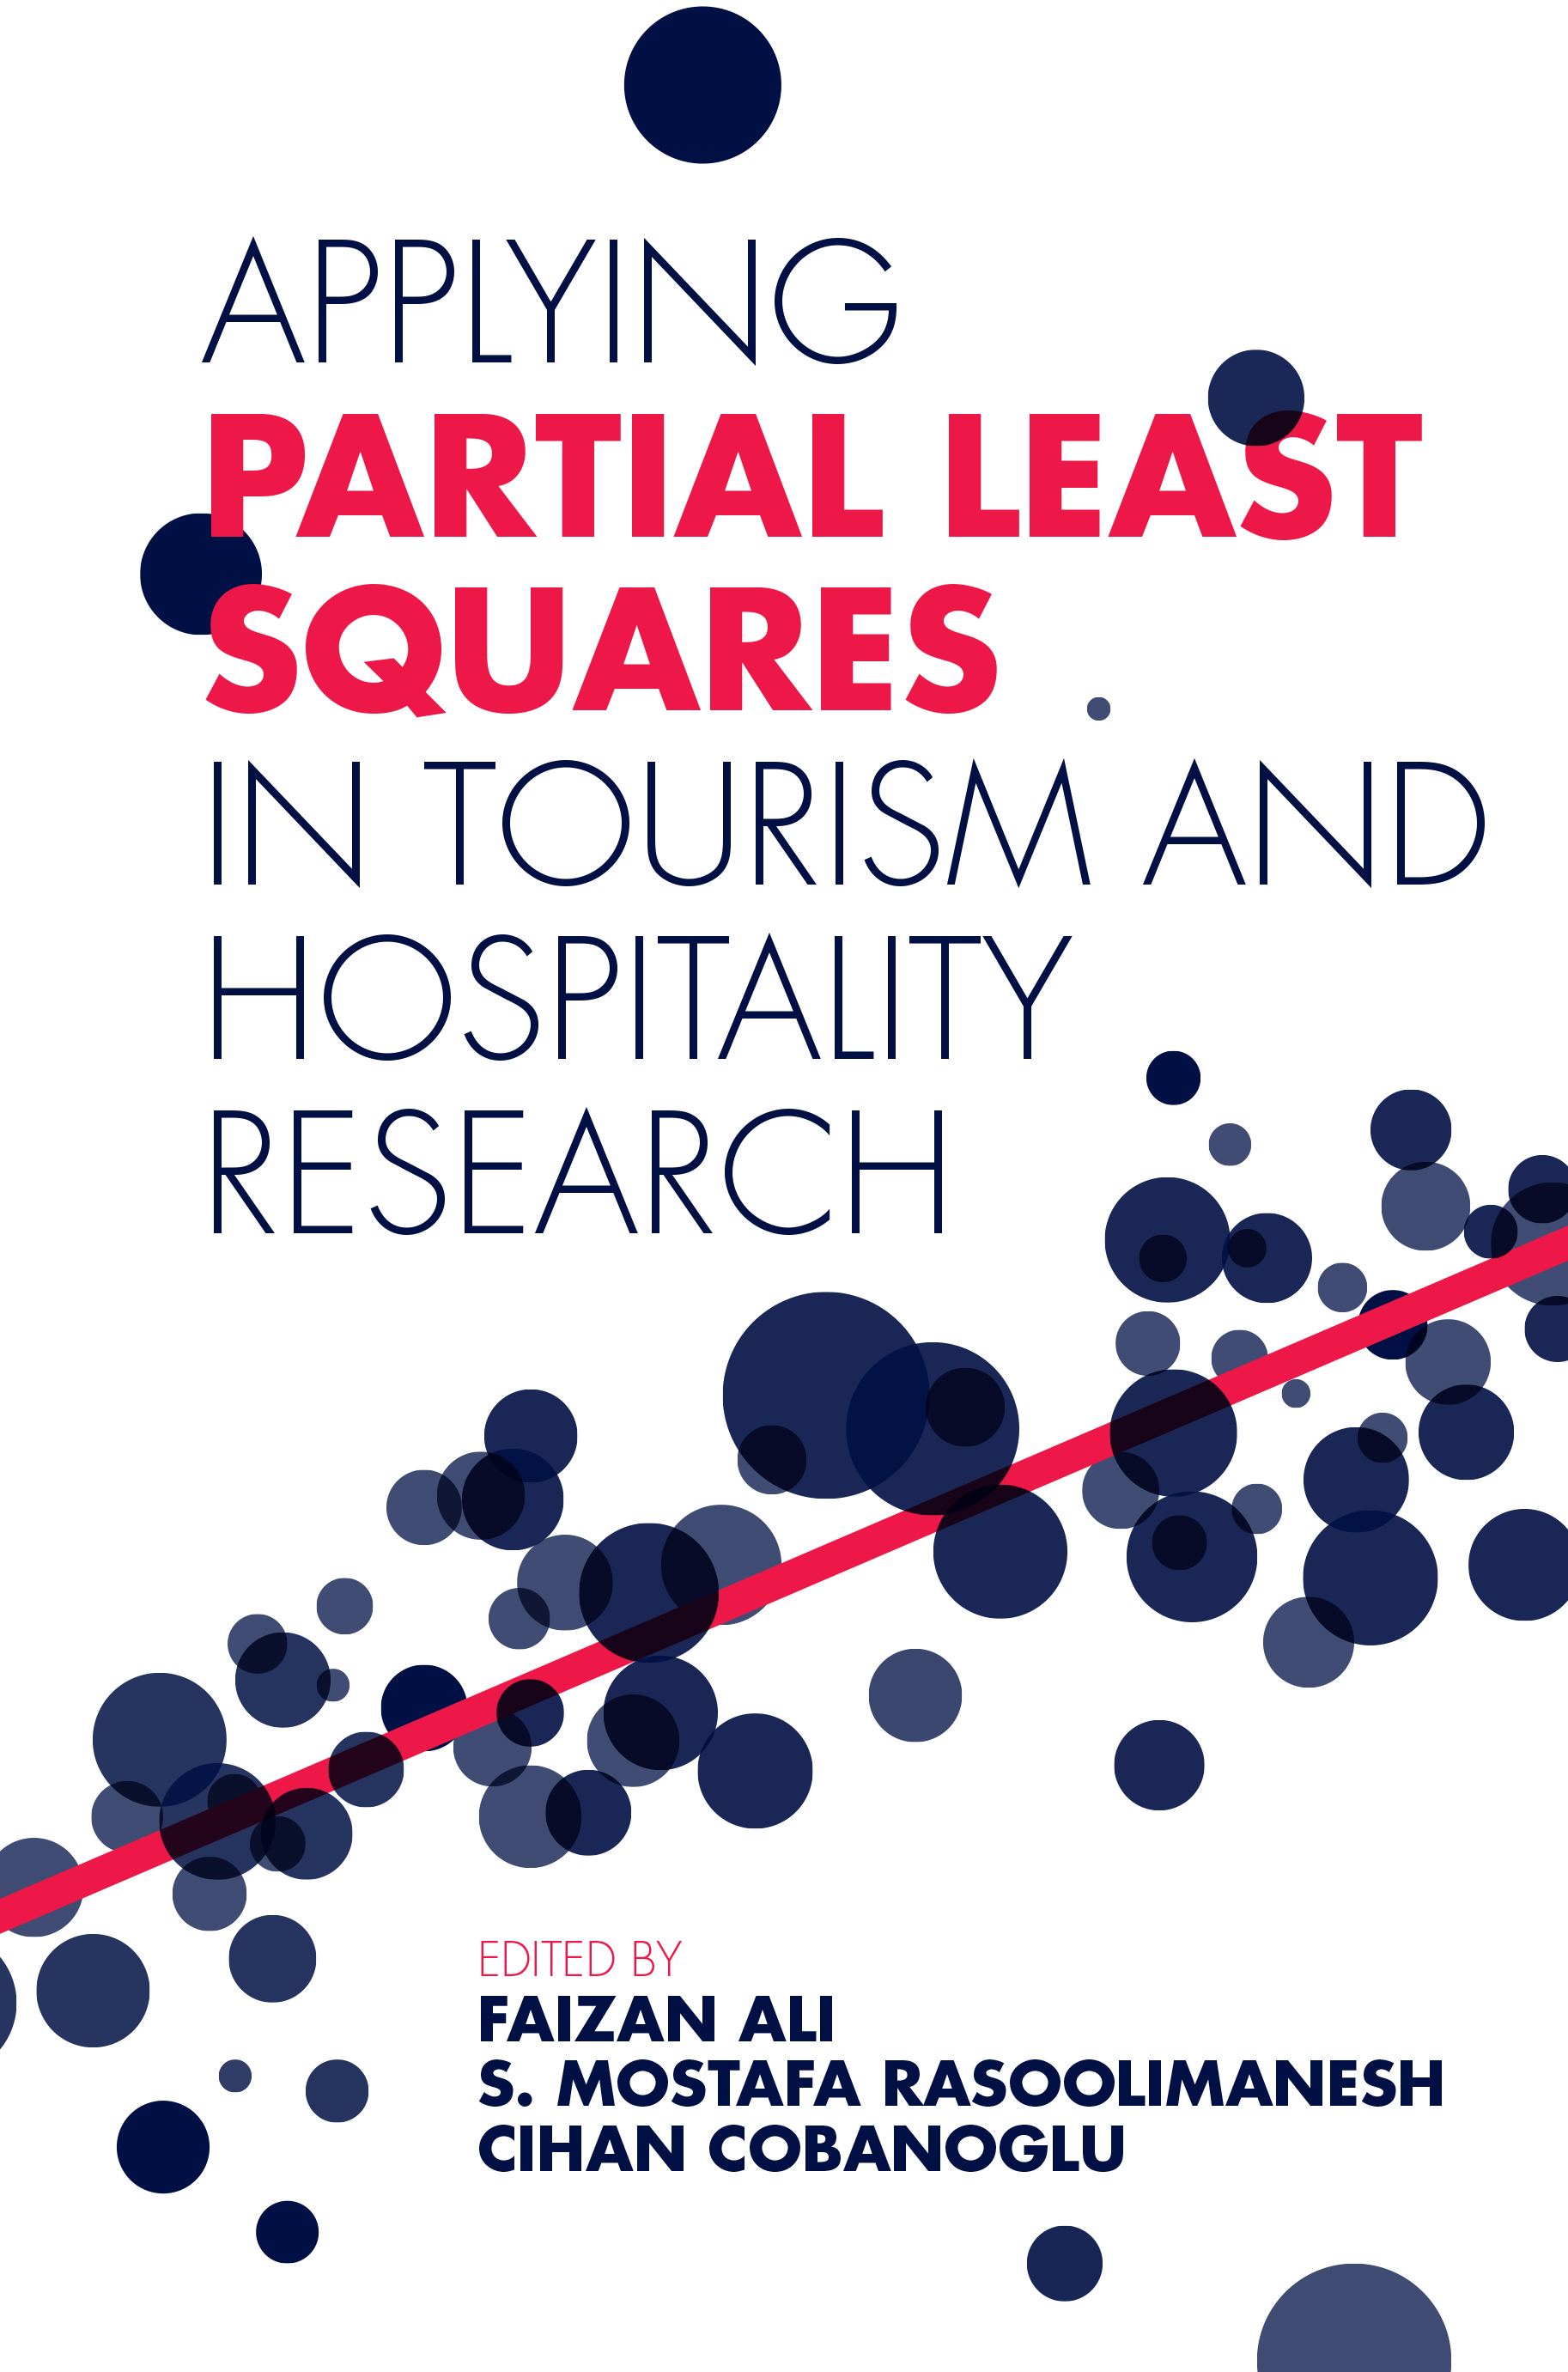 Book cover for Applying Partial Least Squares in Tourism and Hospitality Research a book by Faizan  Ali, S. Mostafa Rasoolimanesh, Cihan  Cobanoglu